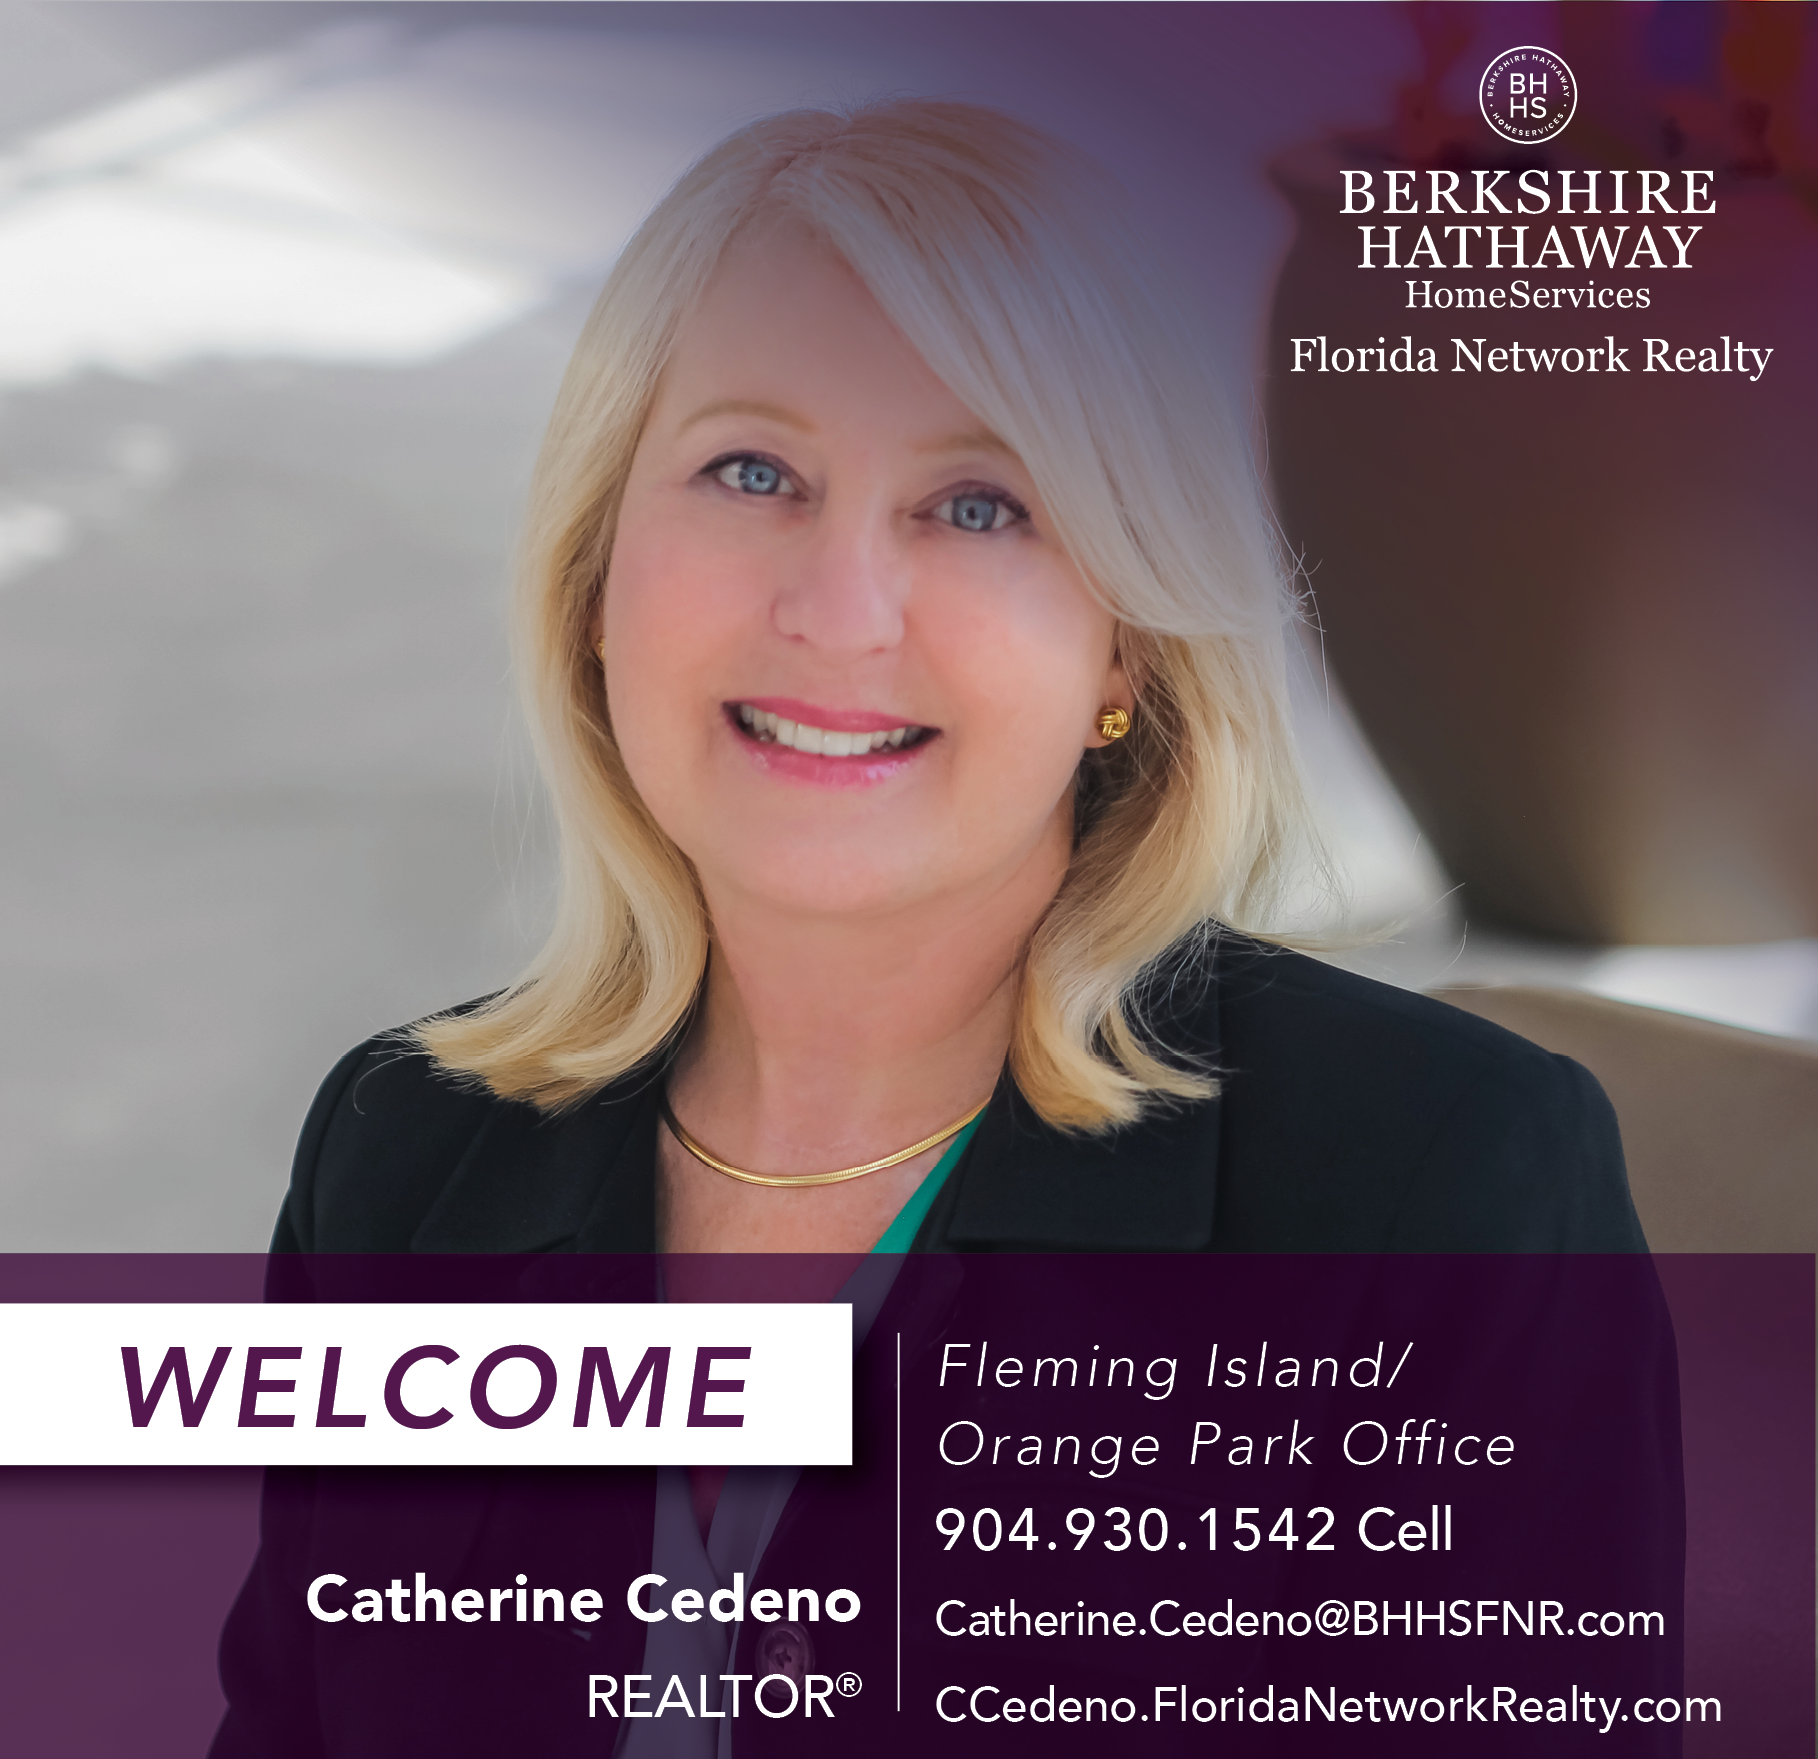 BERKSHIRE HATHAWAY HOMESERVICES FLORIDA NETWORK REALTY WELCOMES CATHERINE CEDENO